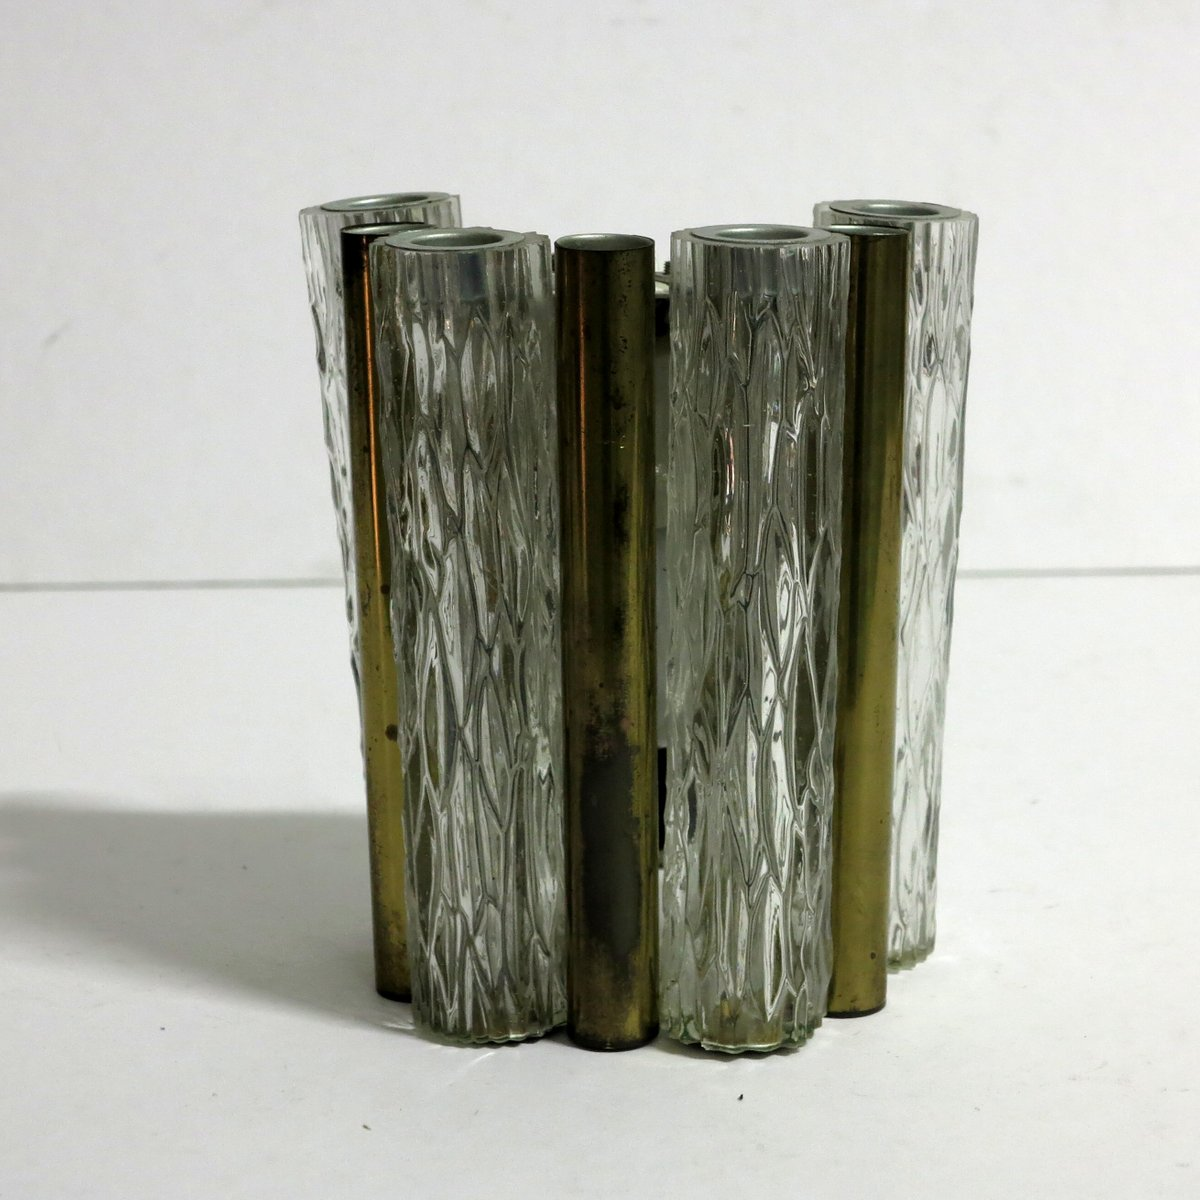 Brass and Glass Wall Lamp from Kaiser Leuchten, 1960s for sale at Pamono